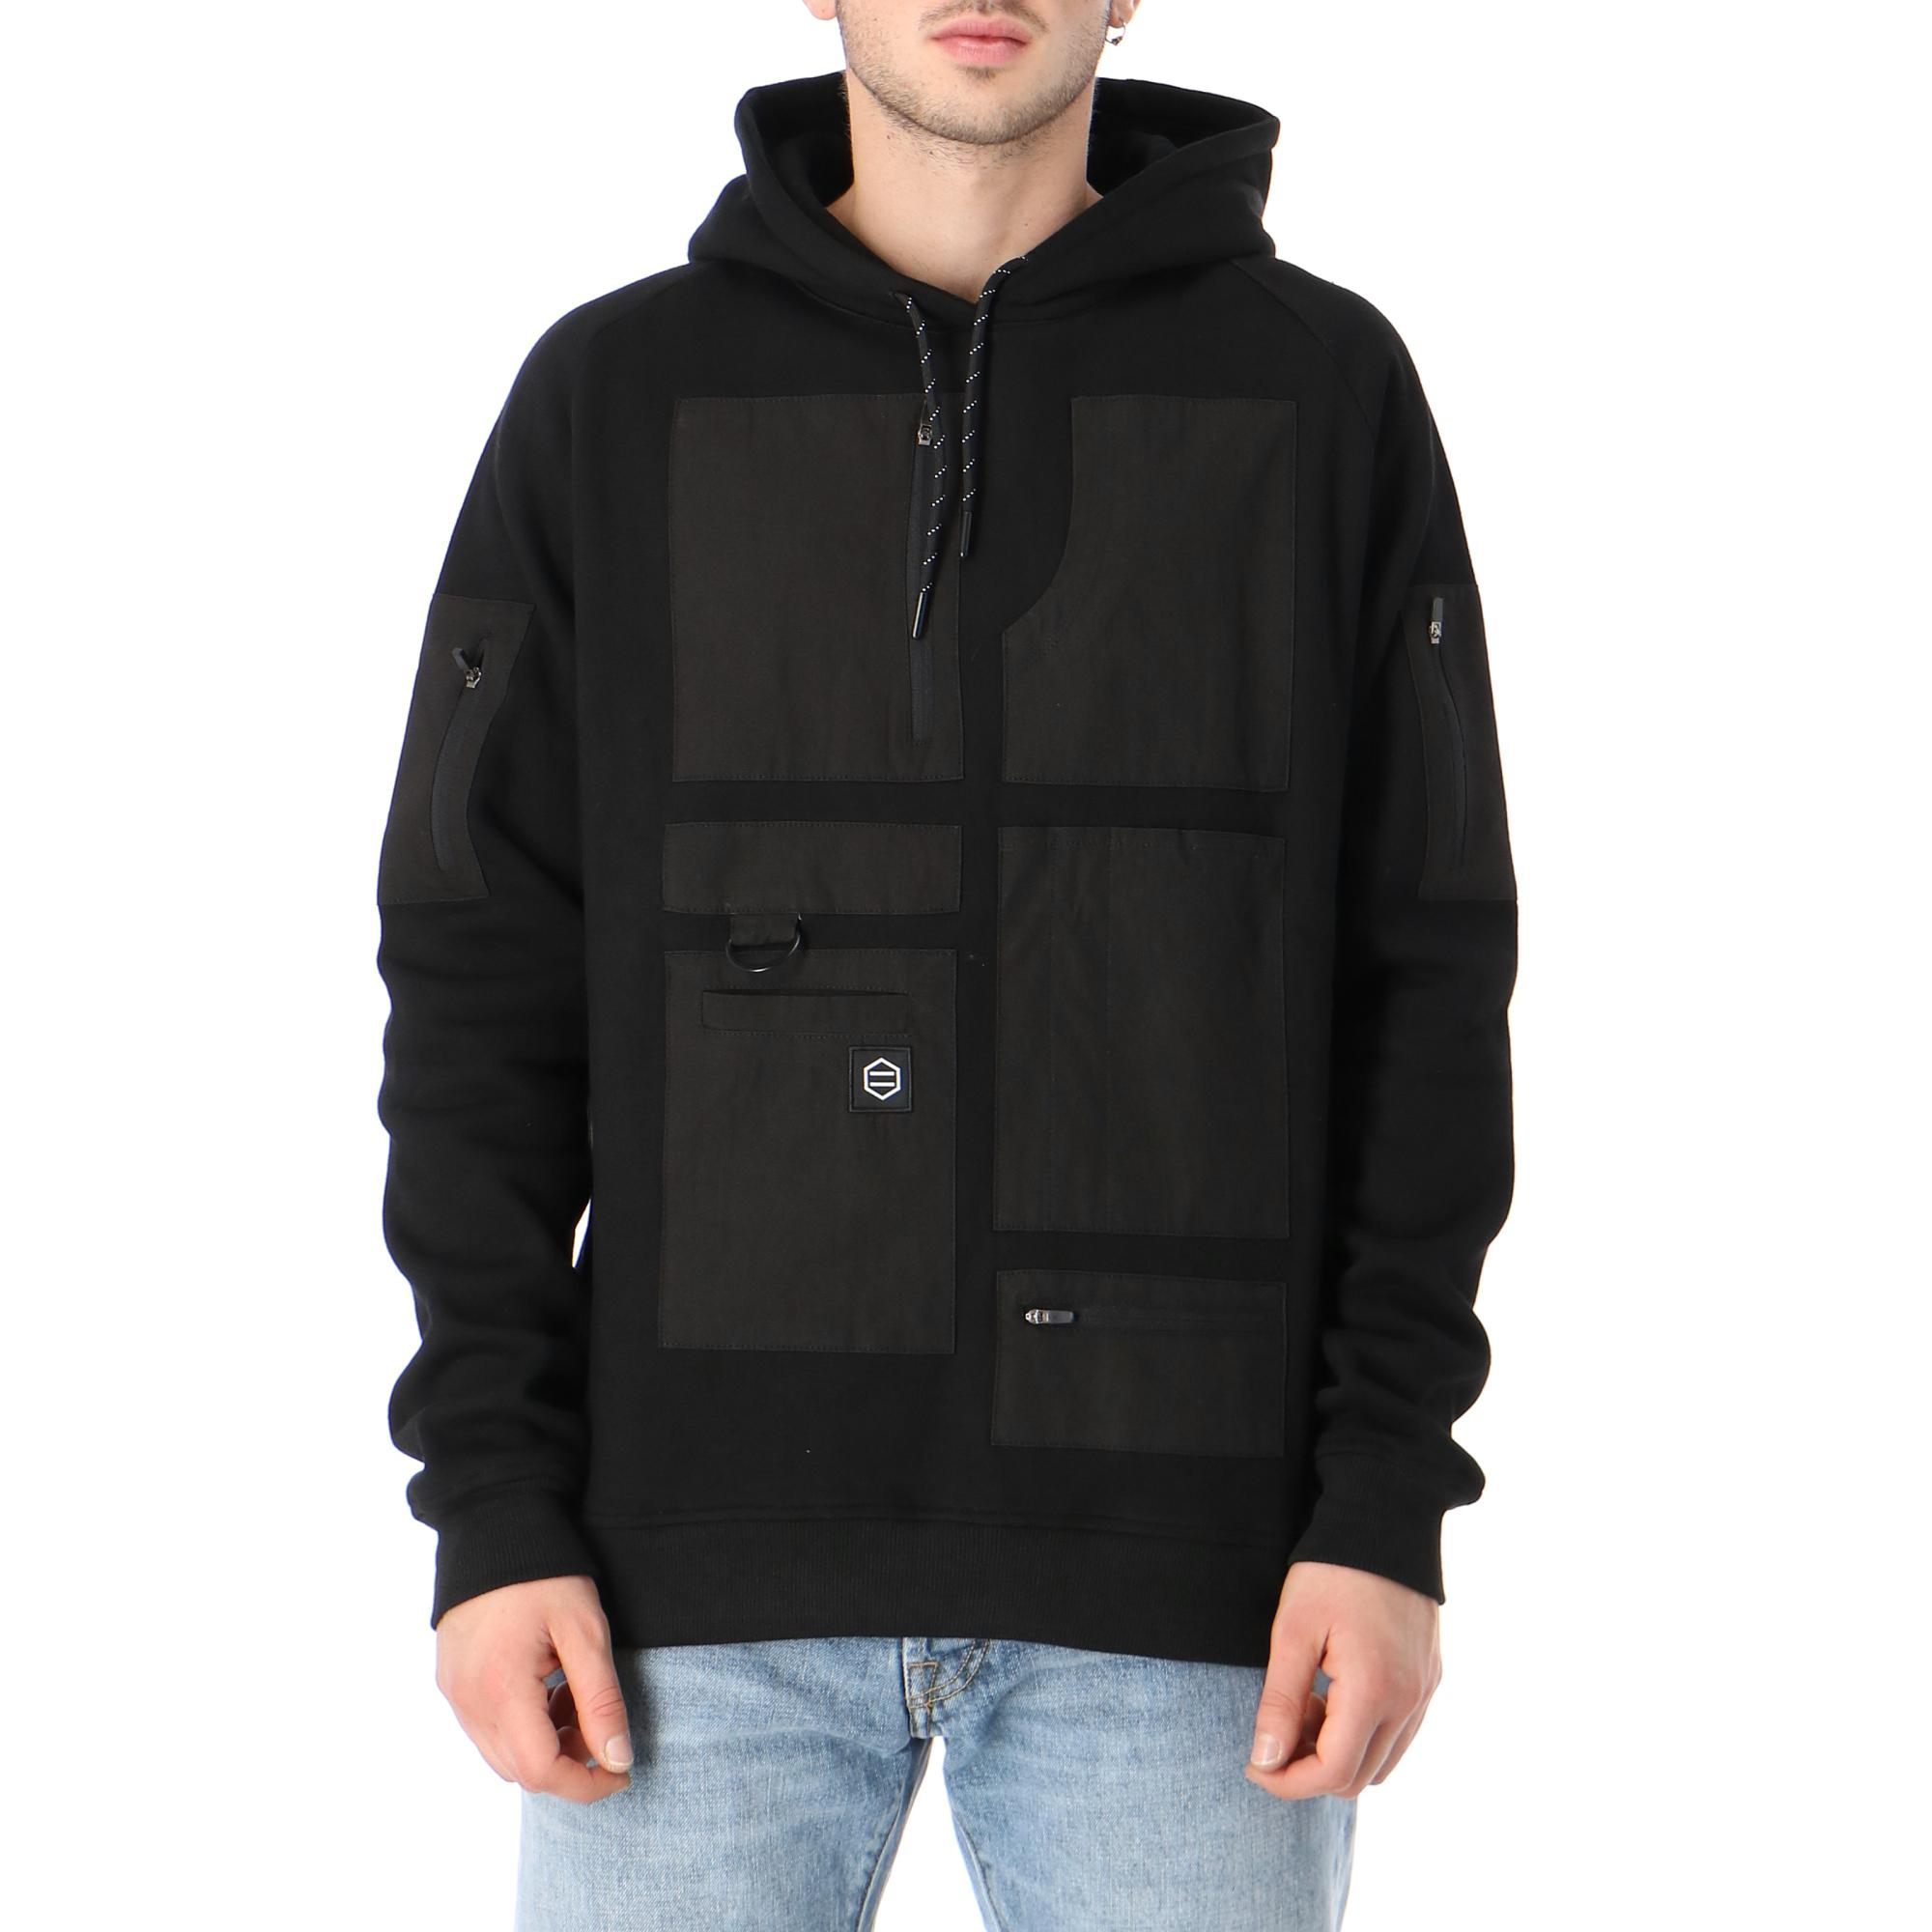 Dolly Noire Special Pocket Black Hoodie Black